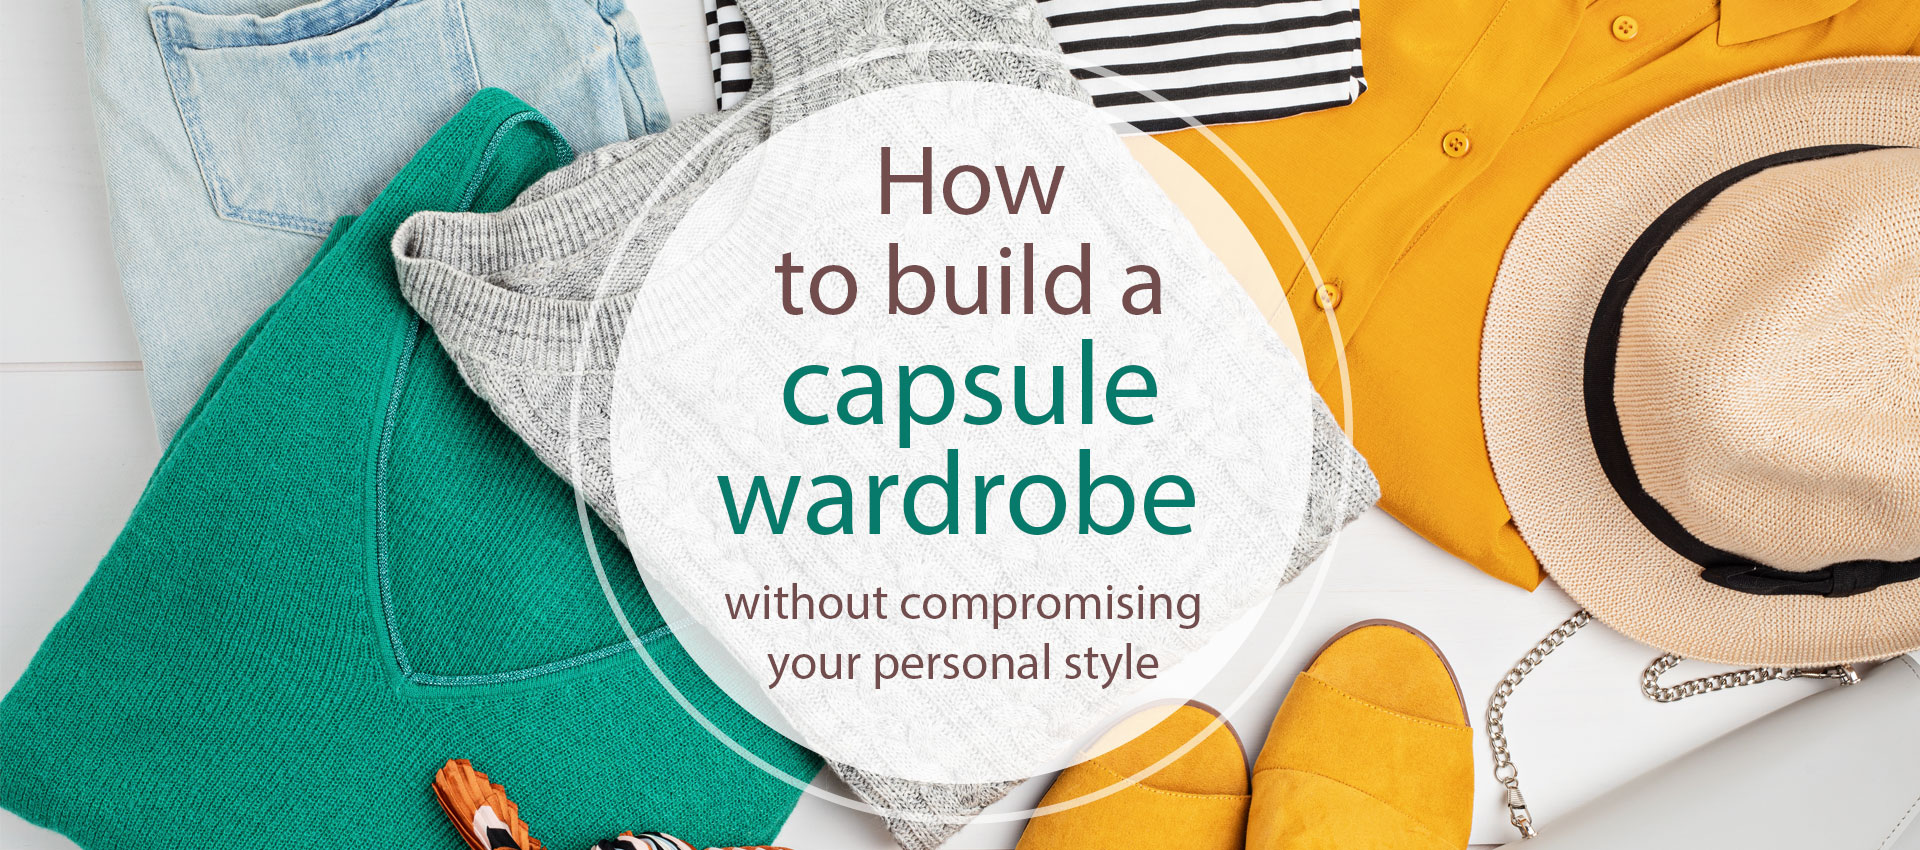 How to build a capsule wardrobe without compromising your personal style